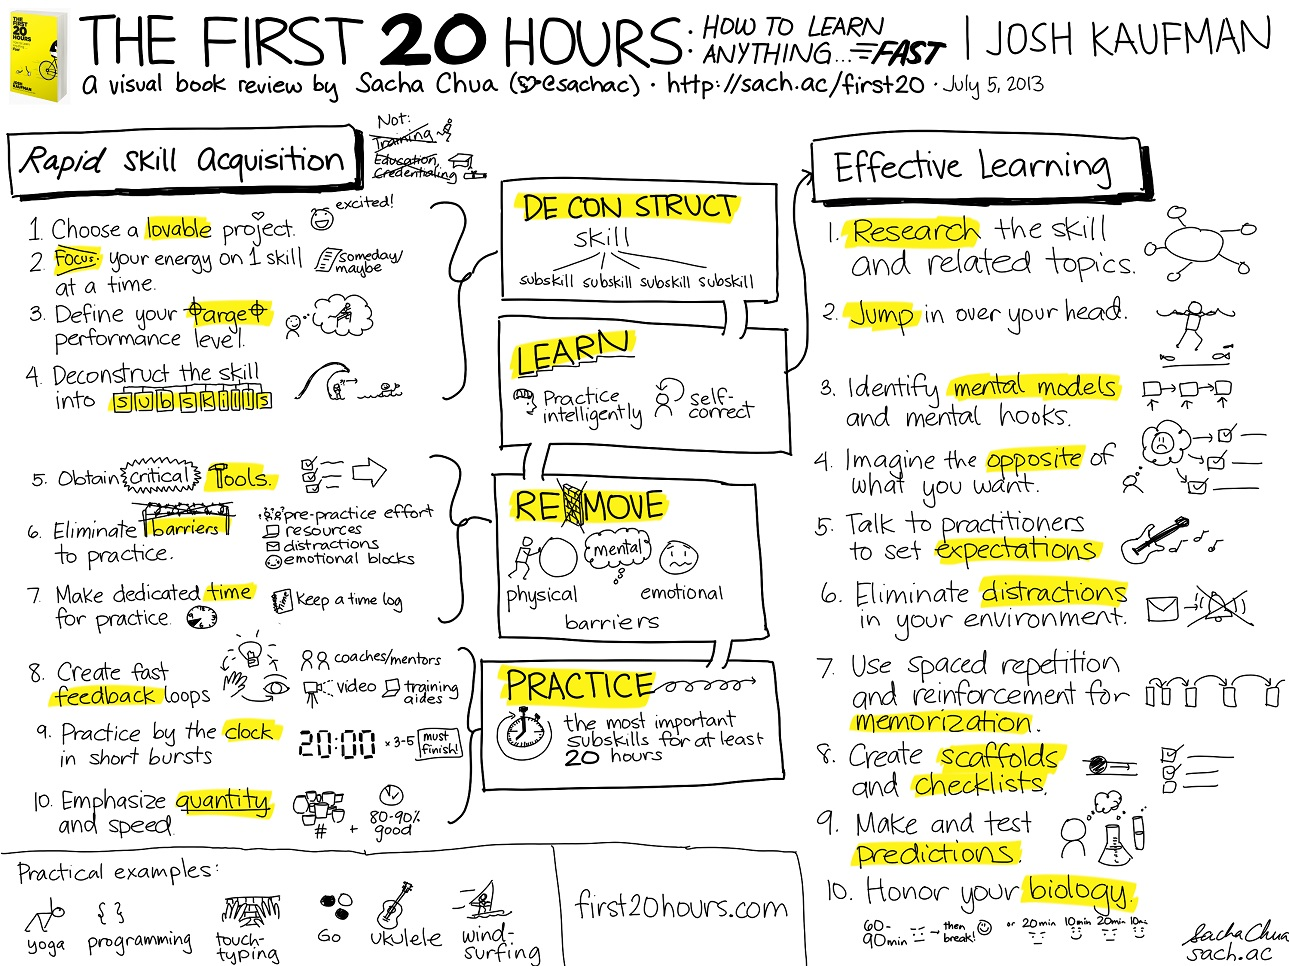 20130705-Visual-Book-Review-The-First-20-Hours-How-to-Learn-Anything...-Fast-Josh-Kaufman